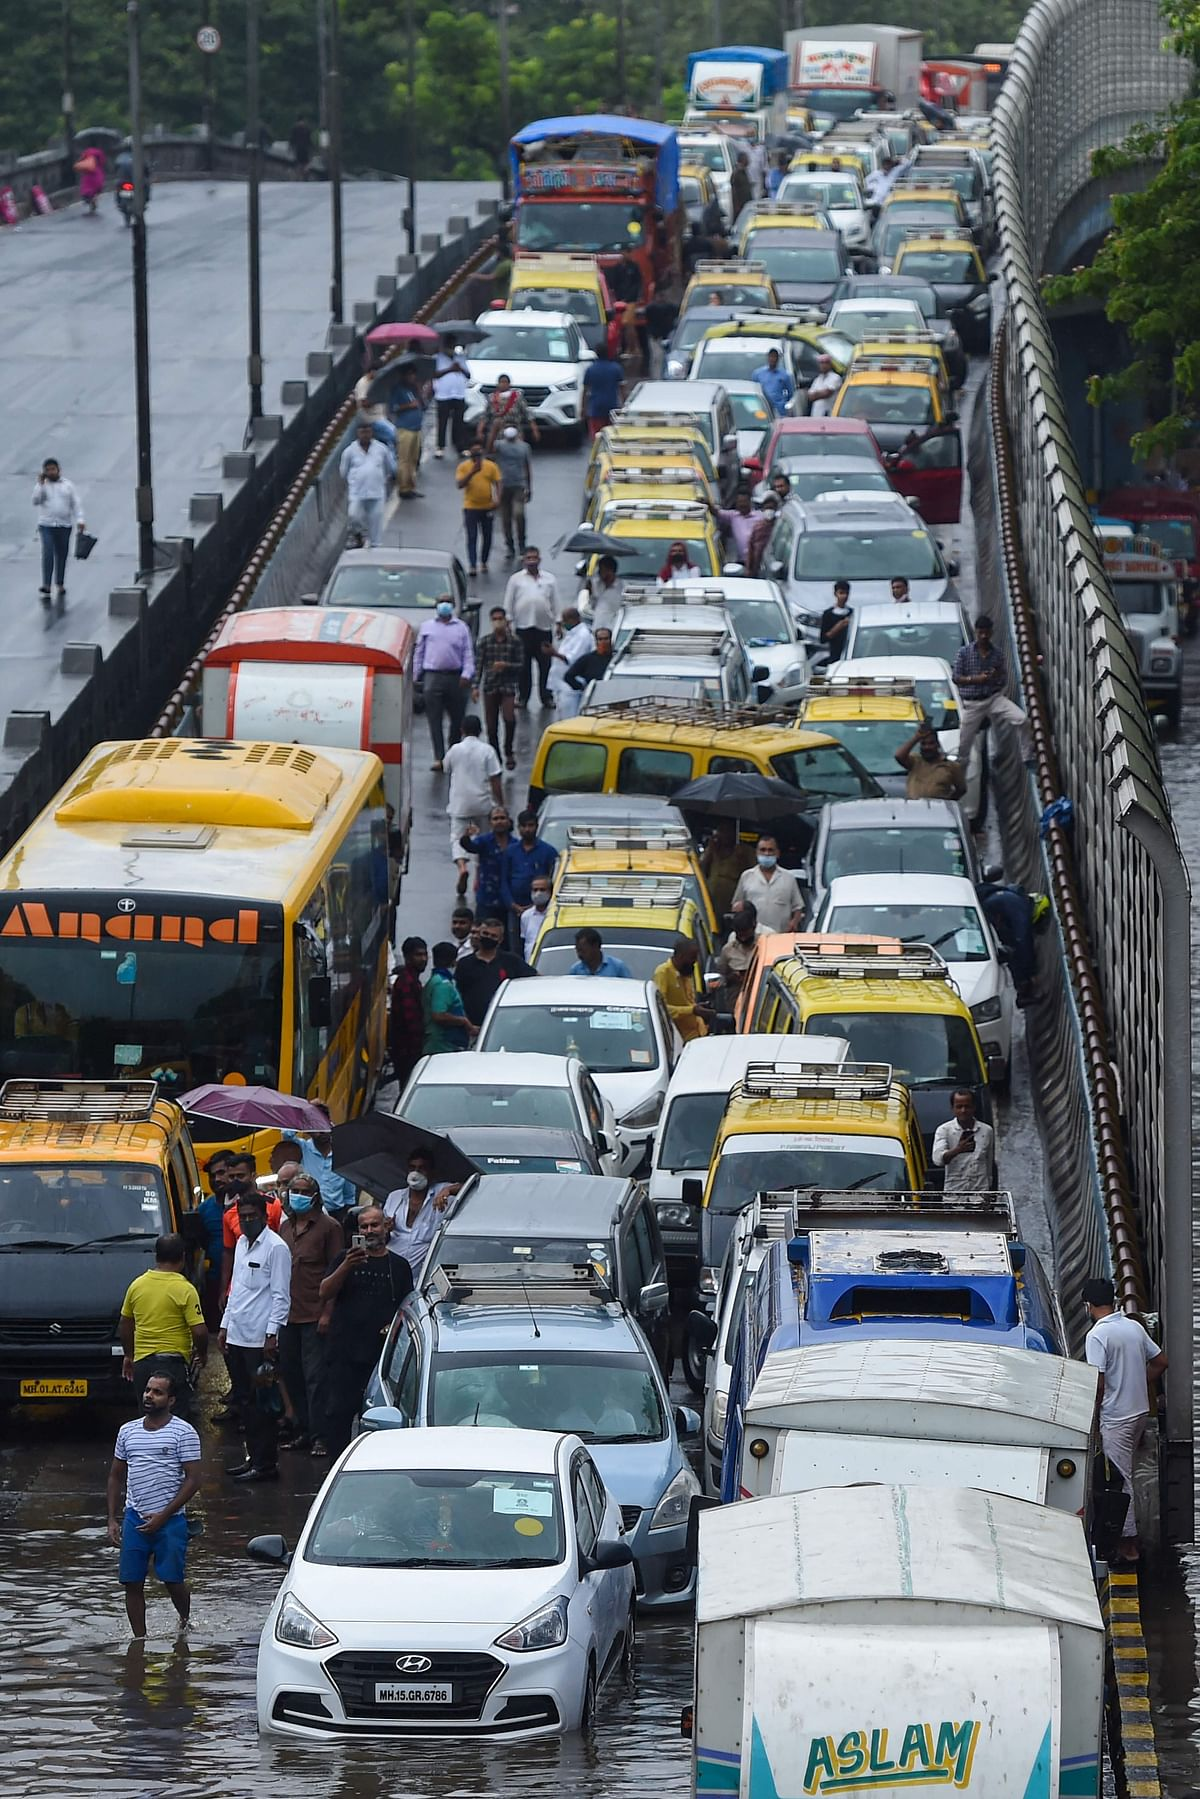 Traffic stands at a stand still on a flooded road following heavy monsoon rains in Mumbai on June 9, 2021.